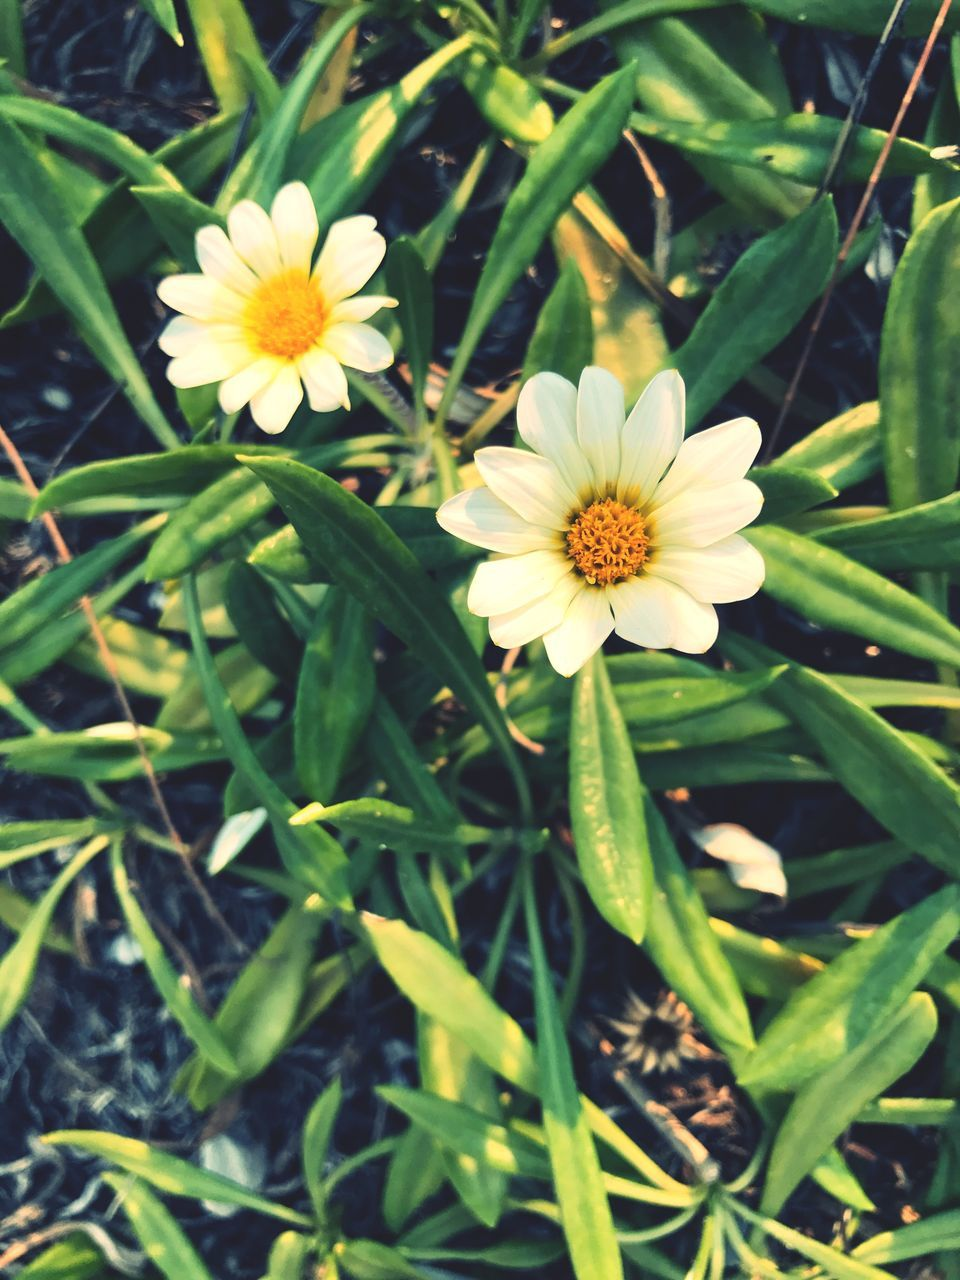 flower, fragility, petal, nature, beauty in nature, freshness, growth, flower head, blooming, pollen, yellow, outdoors, plant, field, green color, day, no people, leaf, close-up